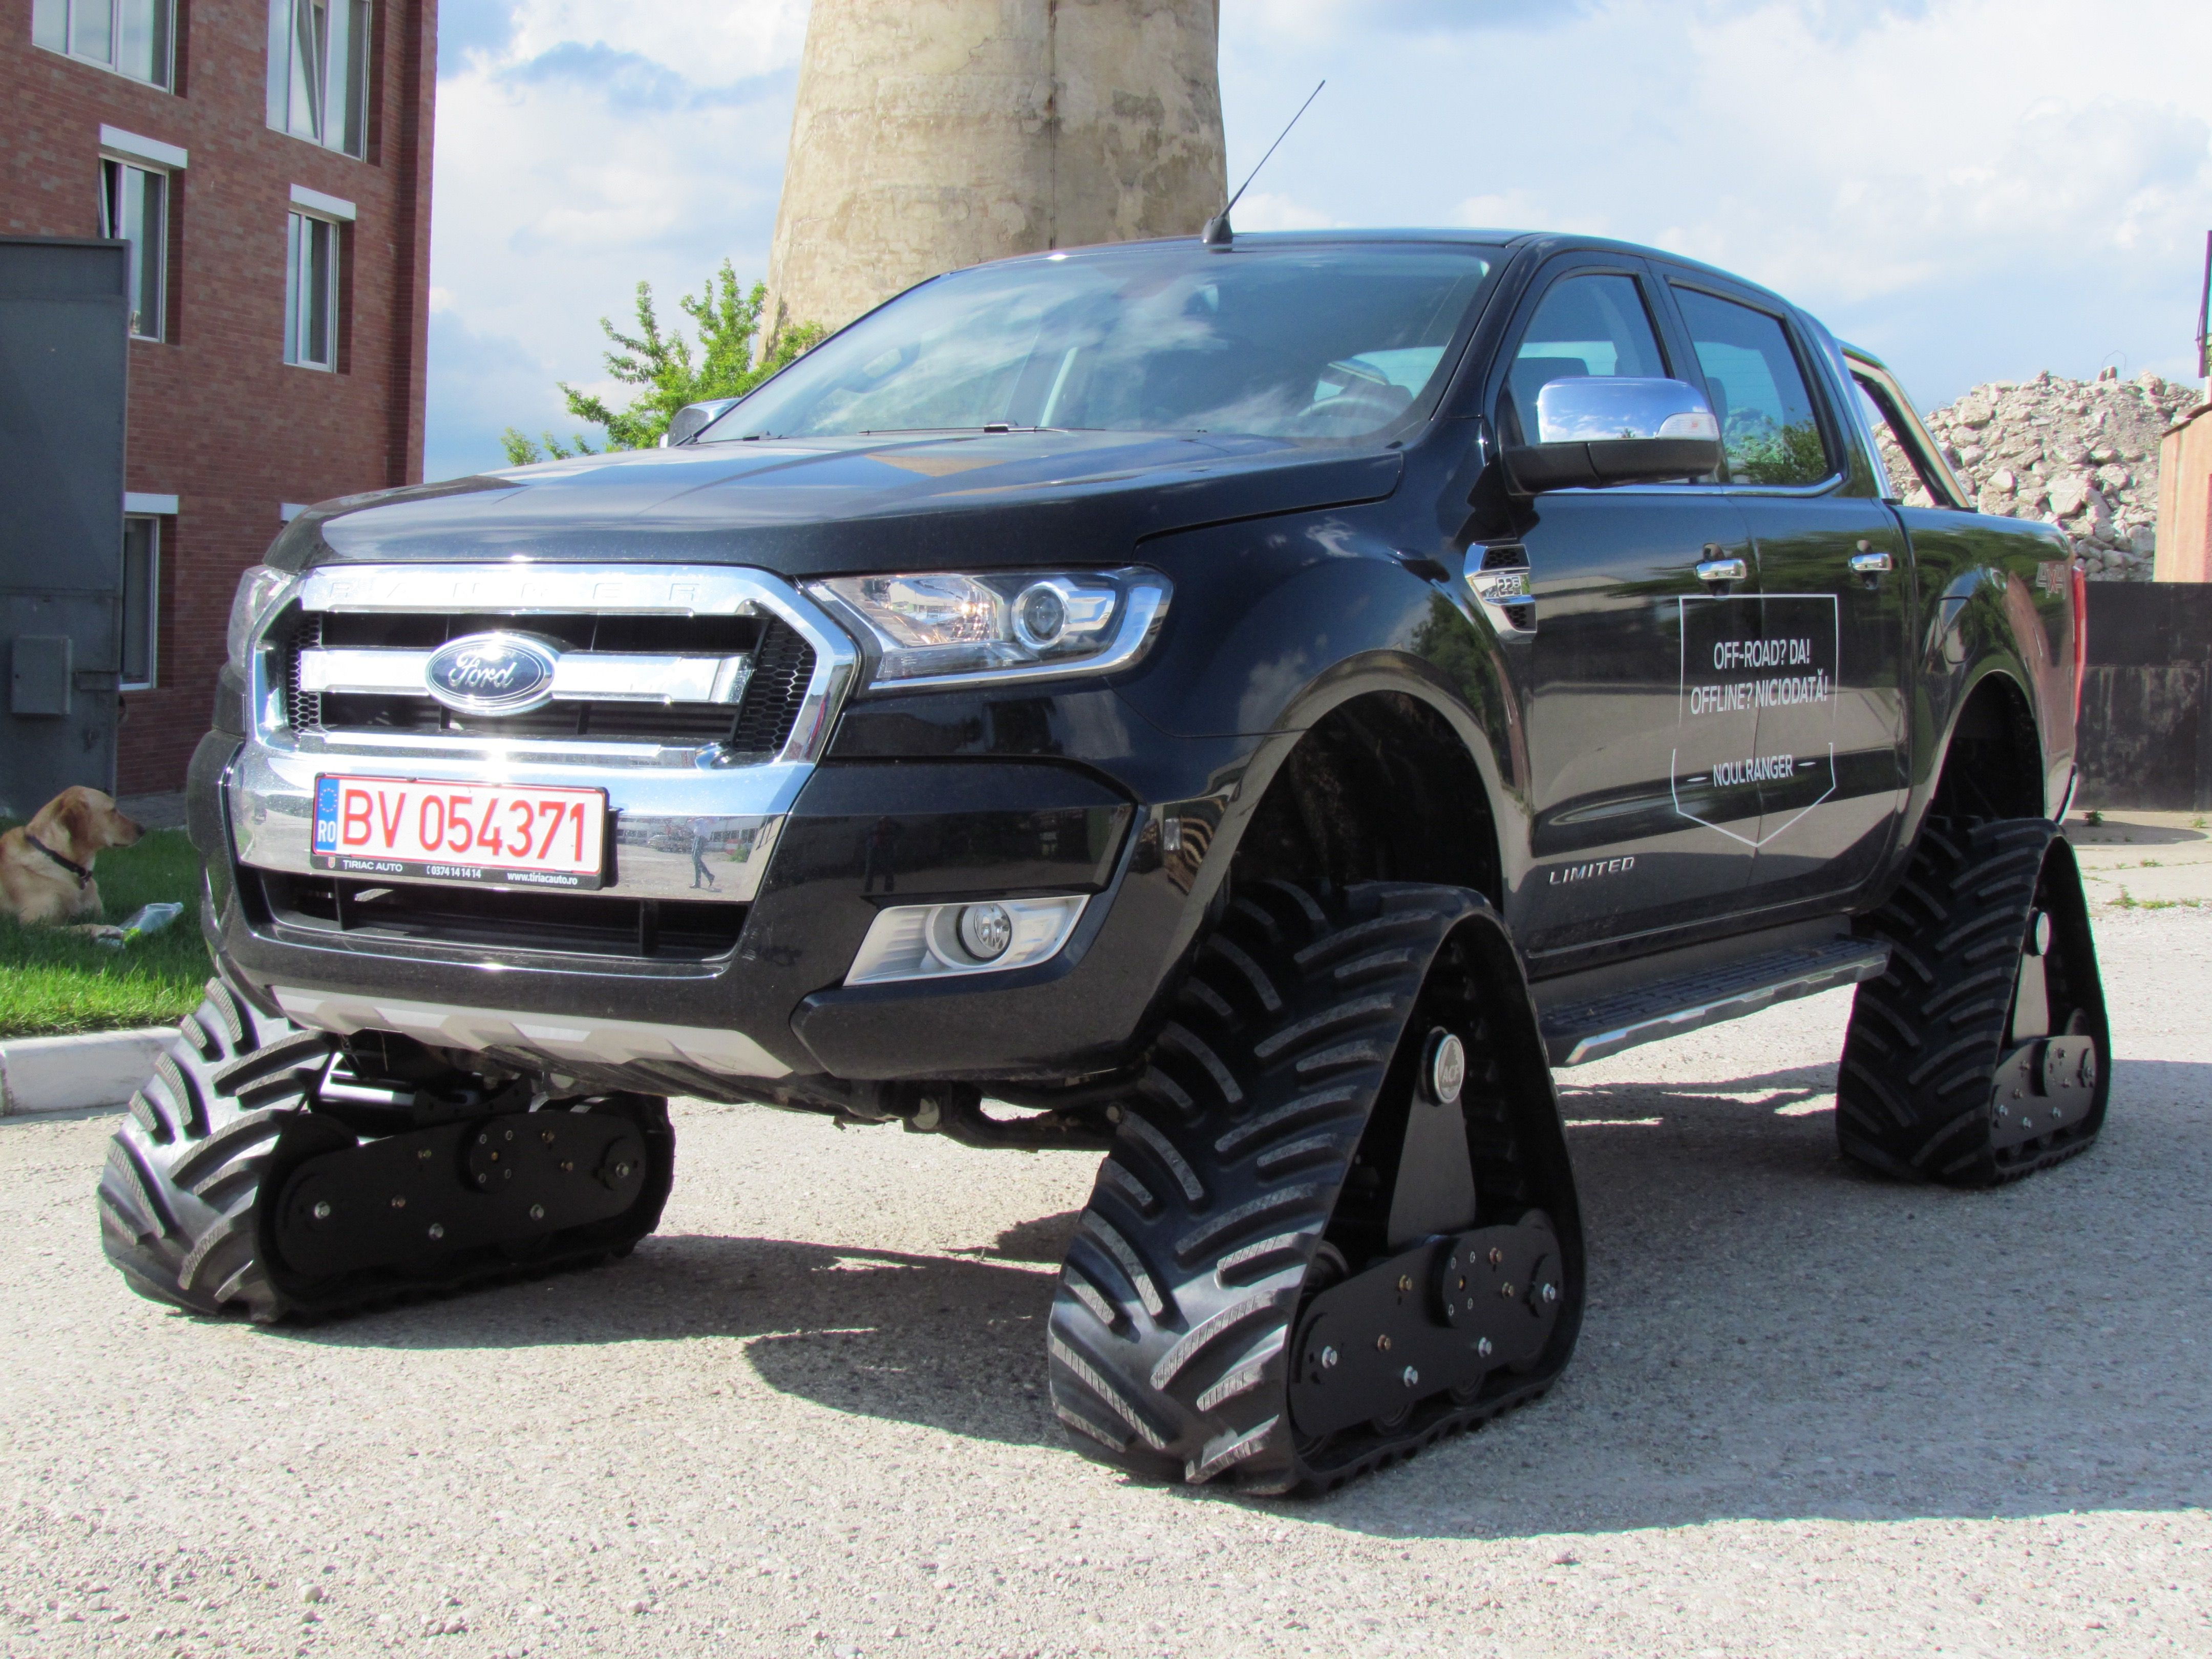 Rubber Track Conversion System Acf For Ford Ranger Need This For Winter